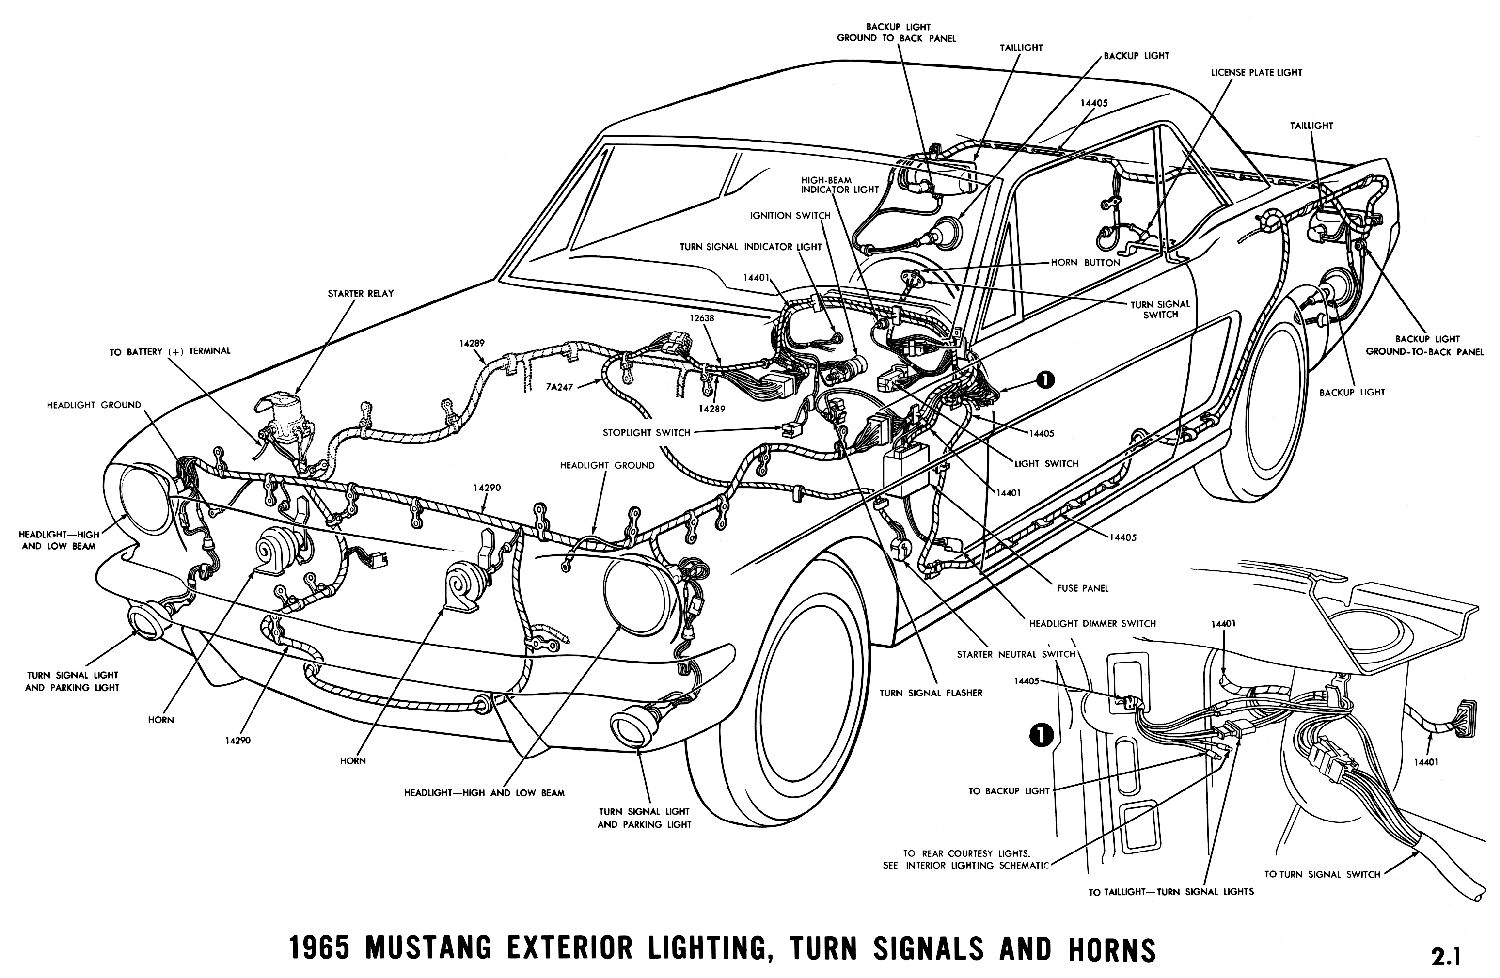 1965 mustang wiring diagrams average joe restoration1965 mustang exterior lighting, turn signals and horns pictorial or schematic